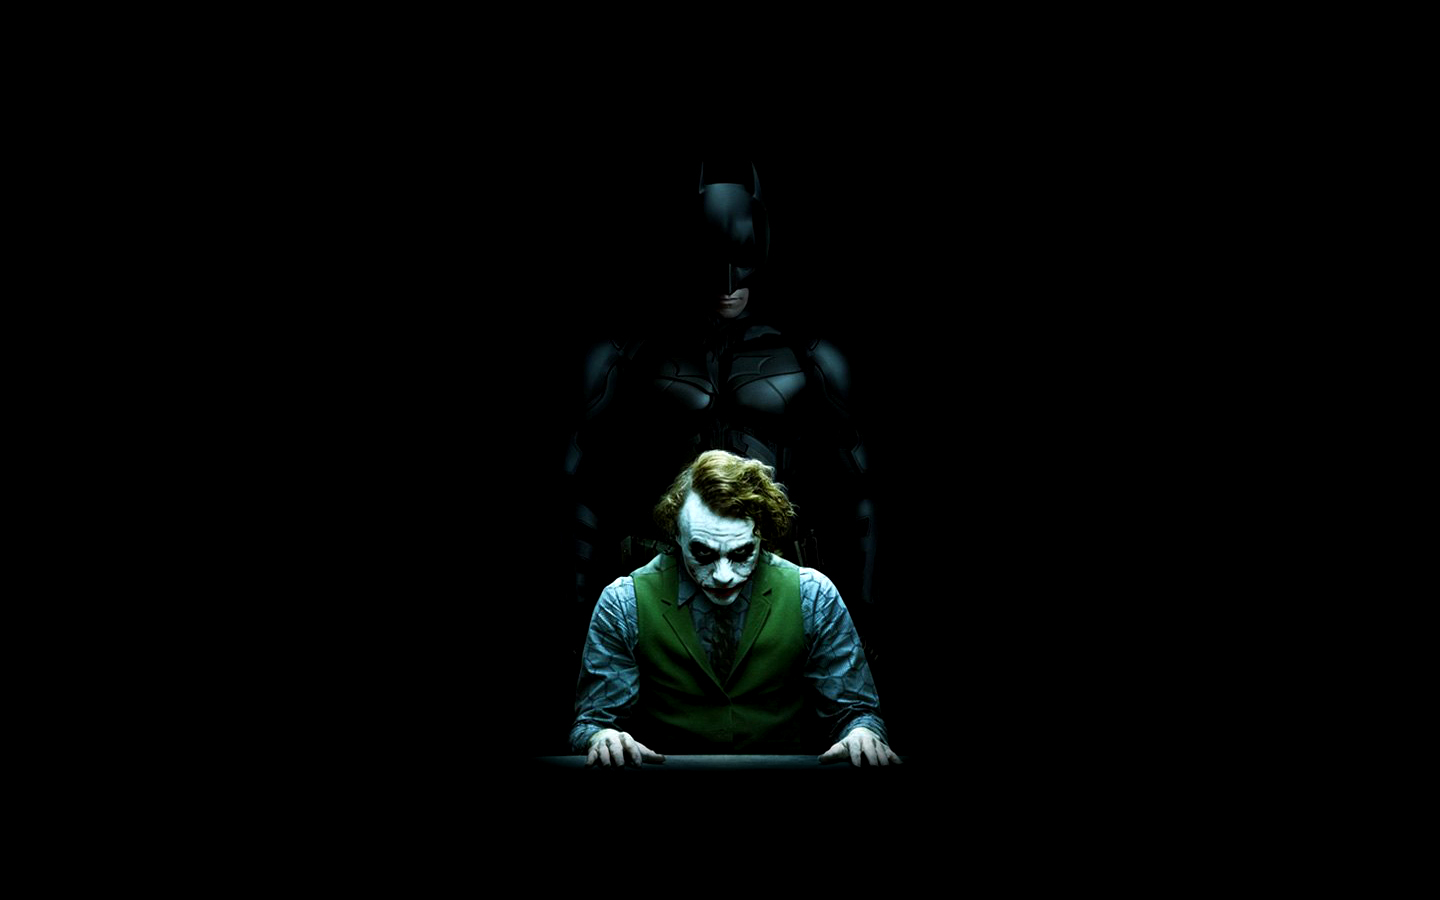 The Joker Wallpaper 1440x900 The Joker Batman The Dark Knight 1440x900